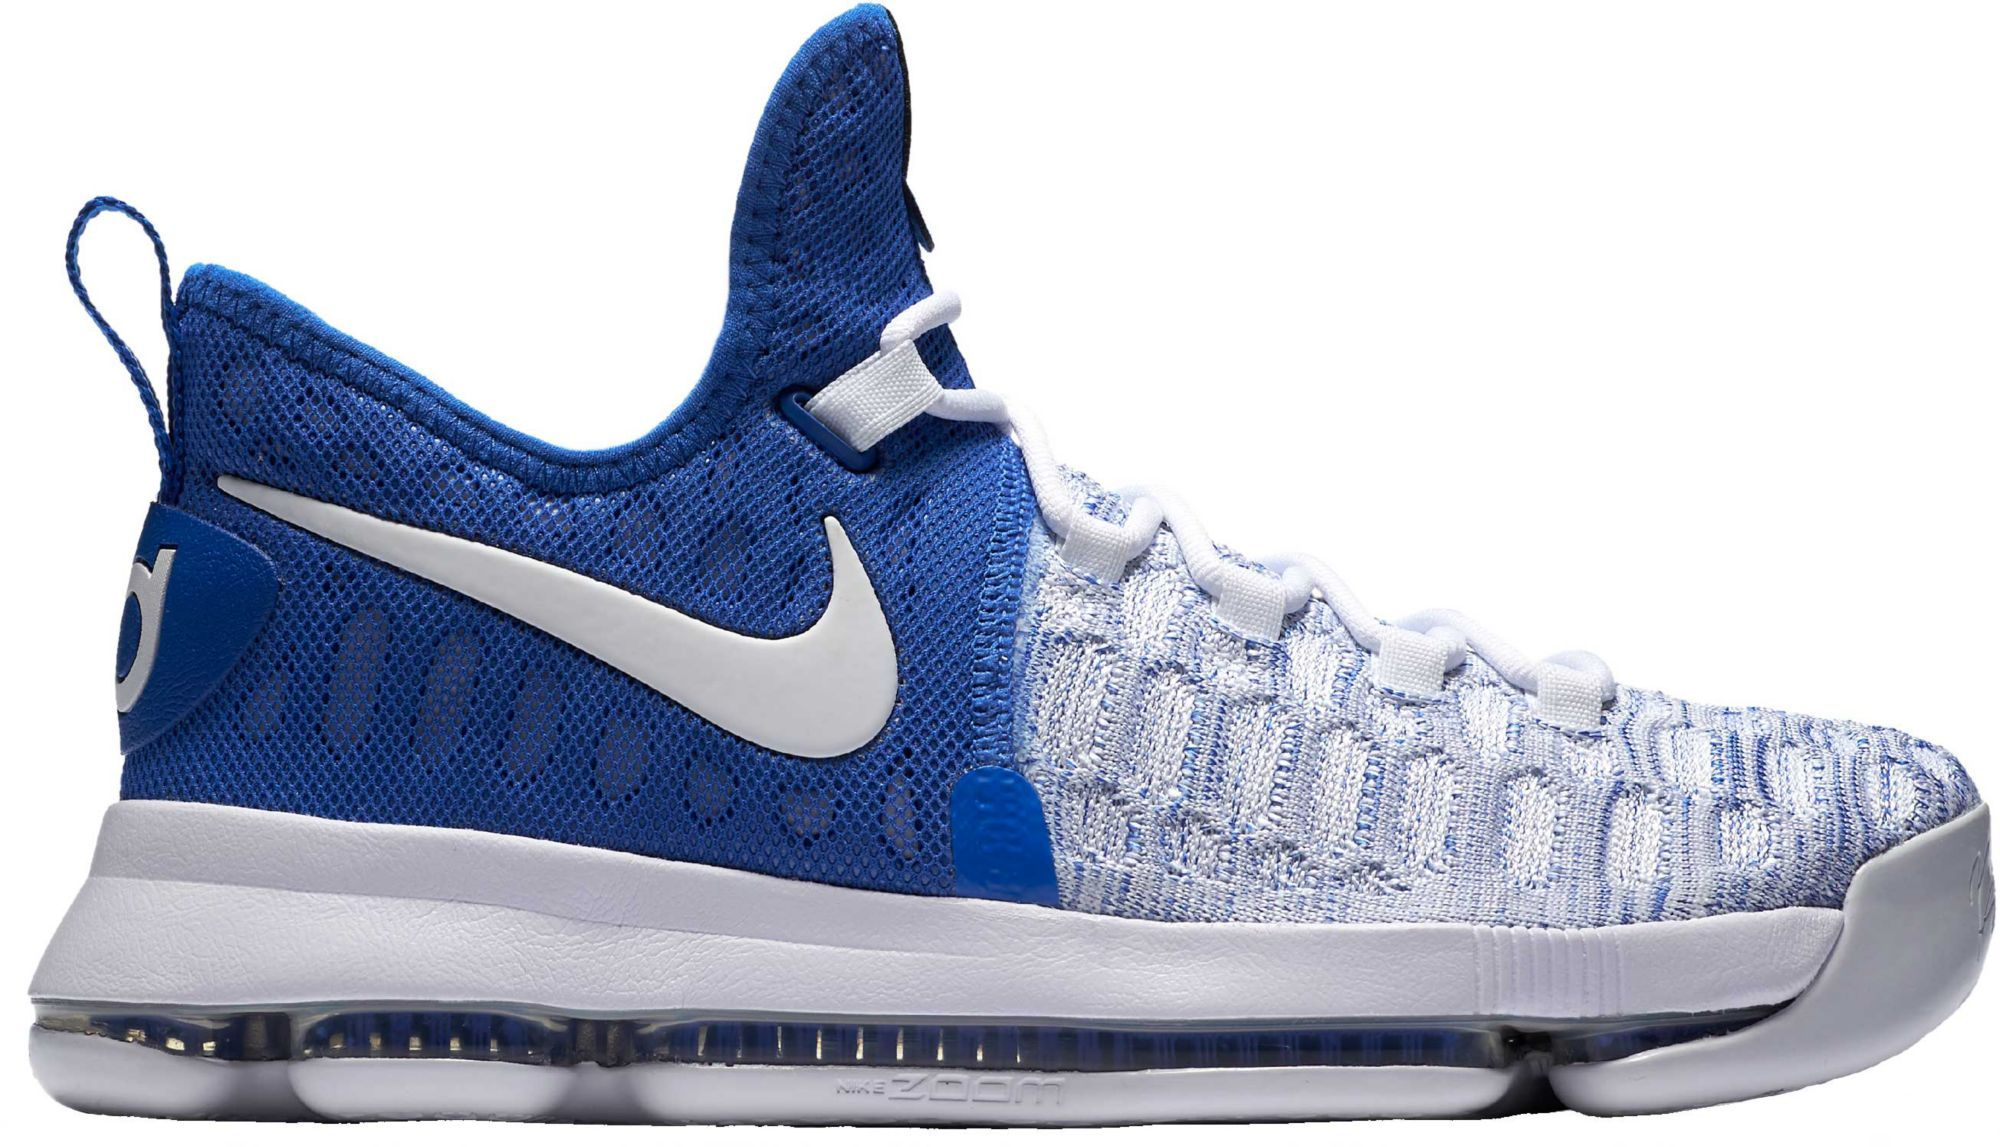 online store b827f 333e3 Nike Men's Zoom KD 9 Basketball Shoes, Blue | Products ...